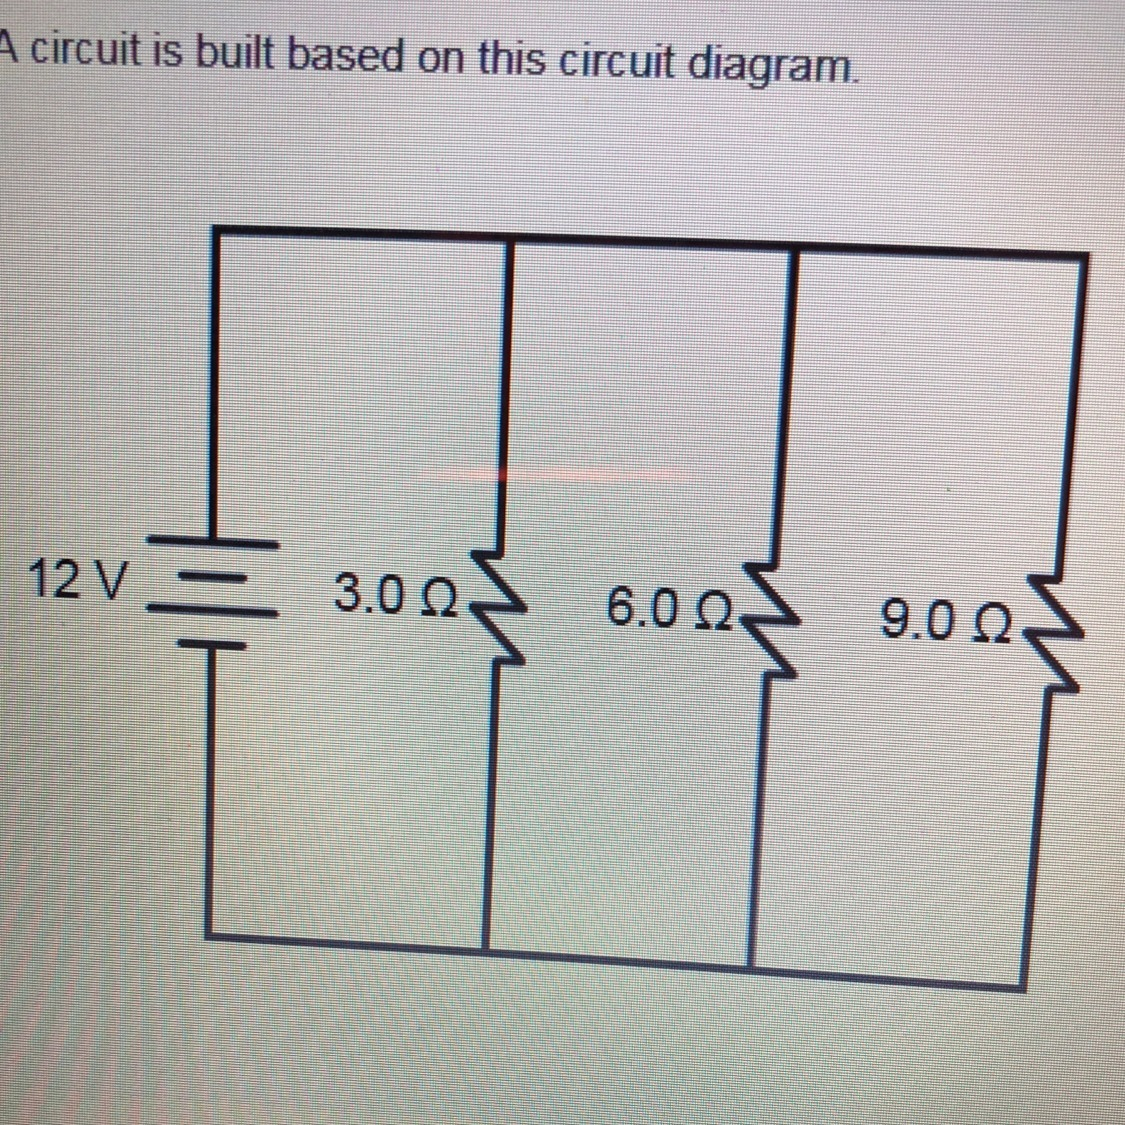 hight resolution of a circuit is built based on this circuit diagram what is the equivalent resistance of the circuit